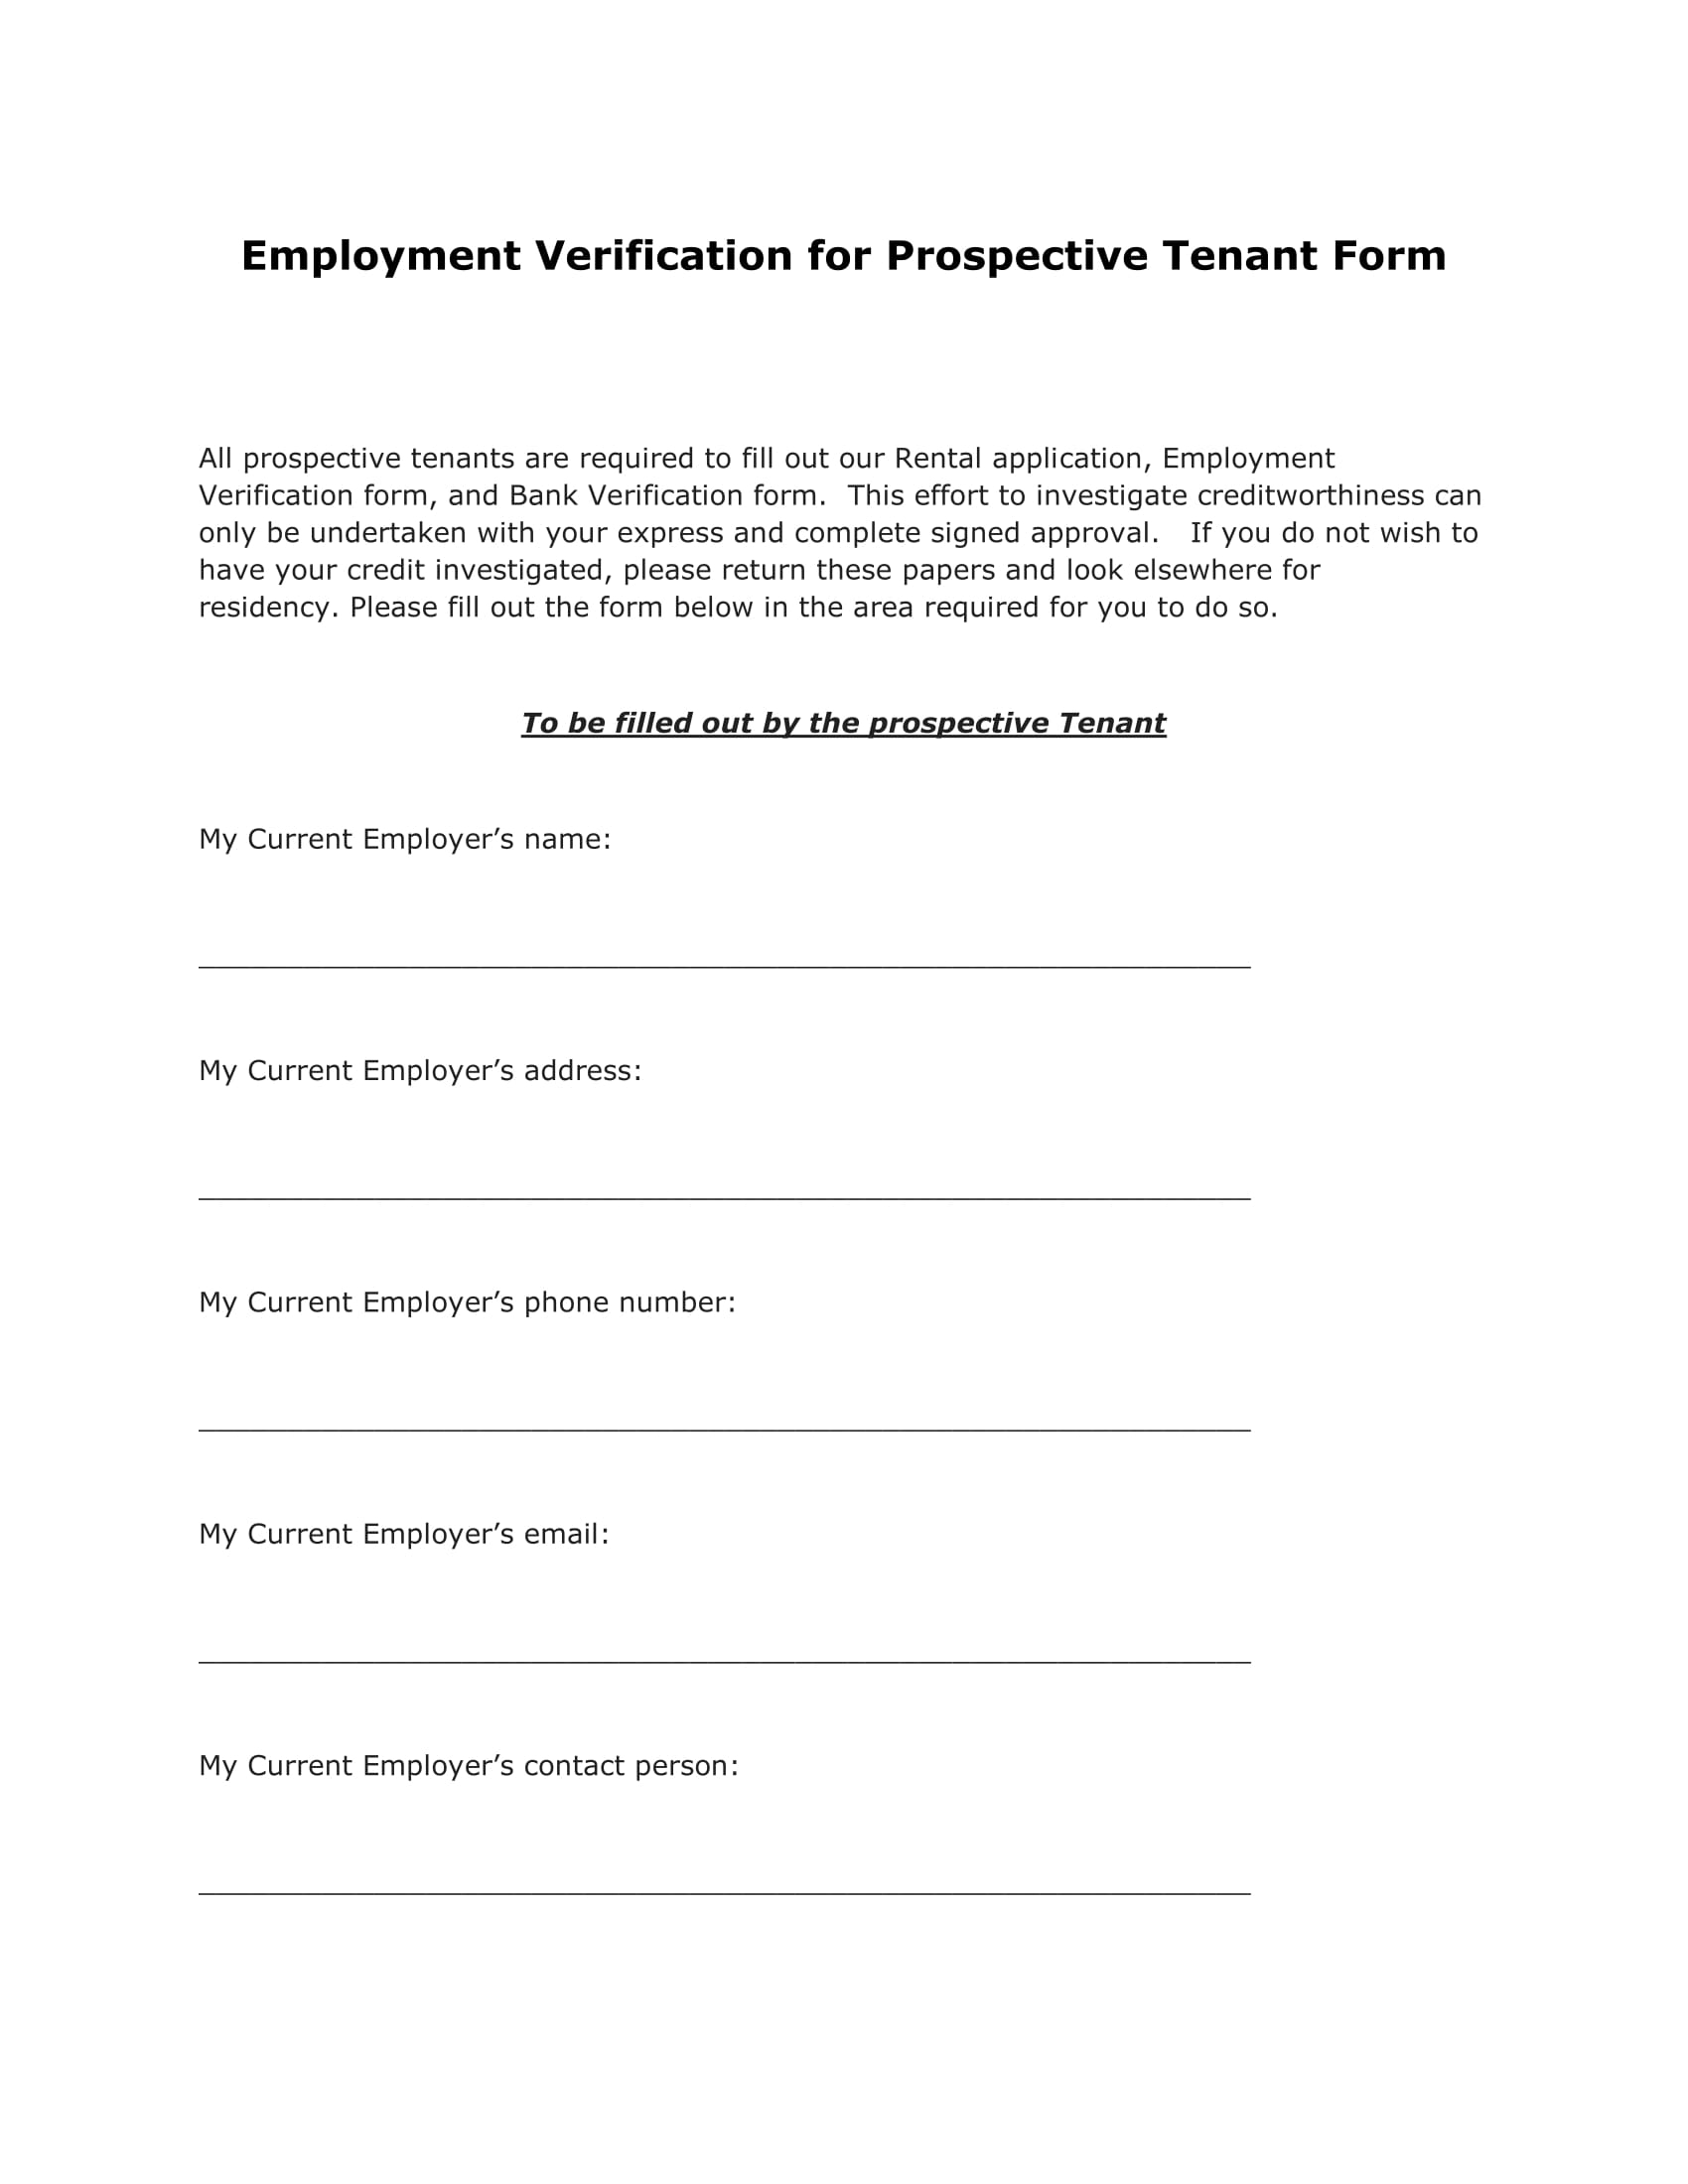 prospective tenant employment verification form 1